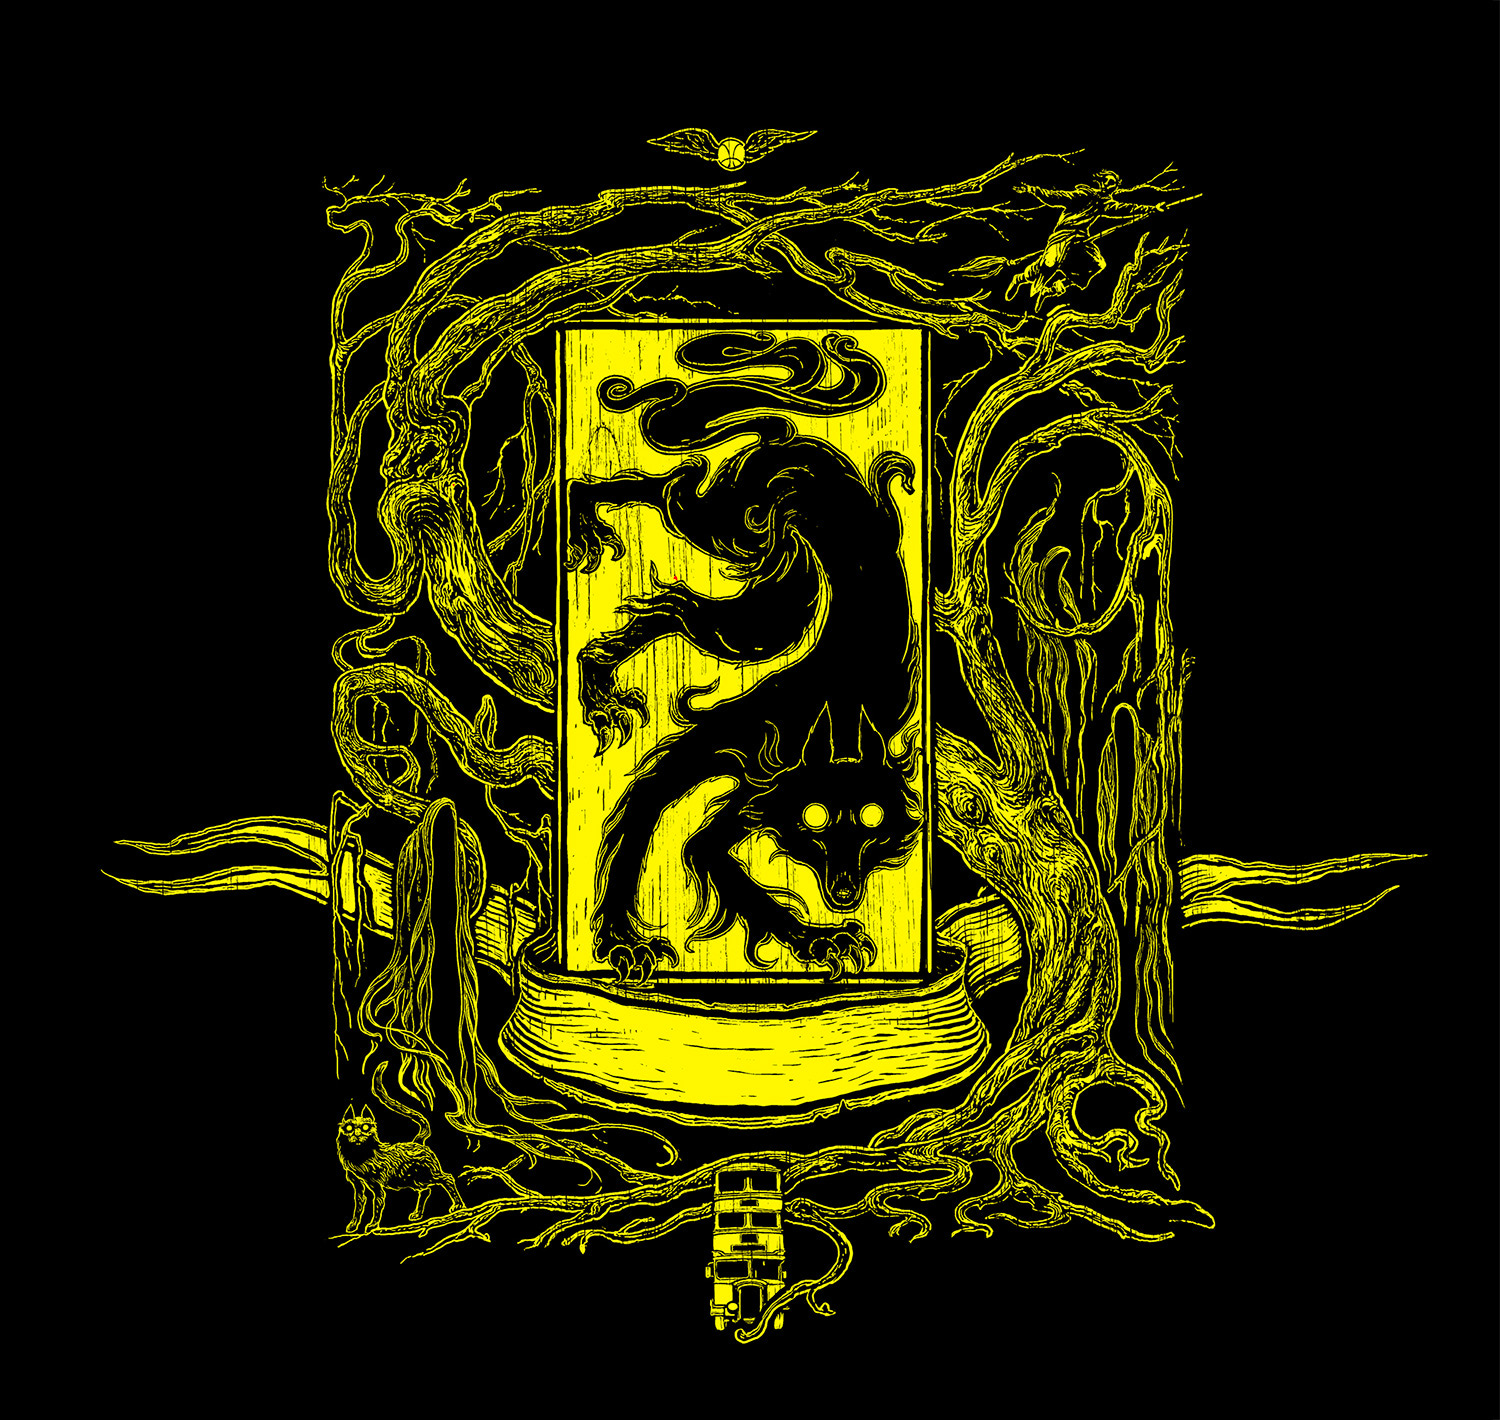 'Prisoner of Azkaban' house edition crest (Hufflepuff)